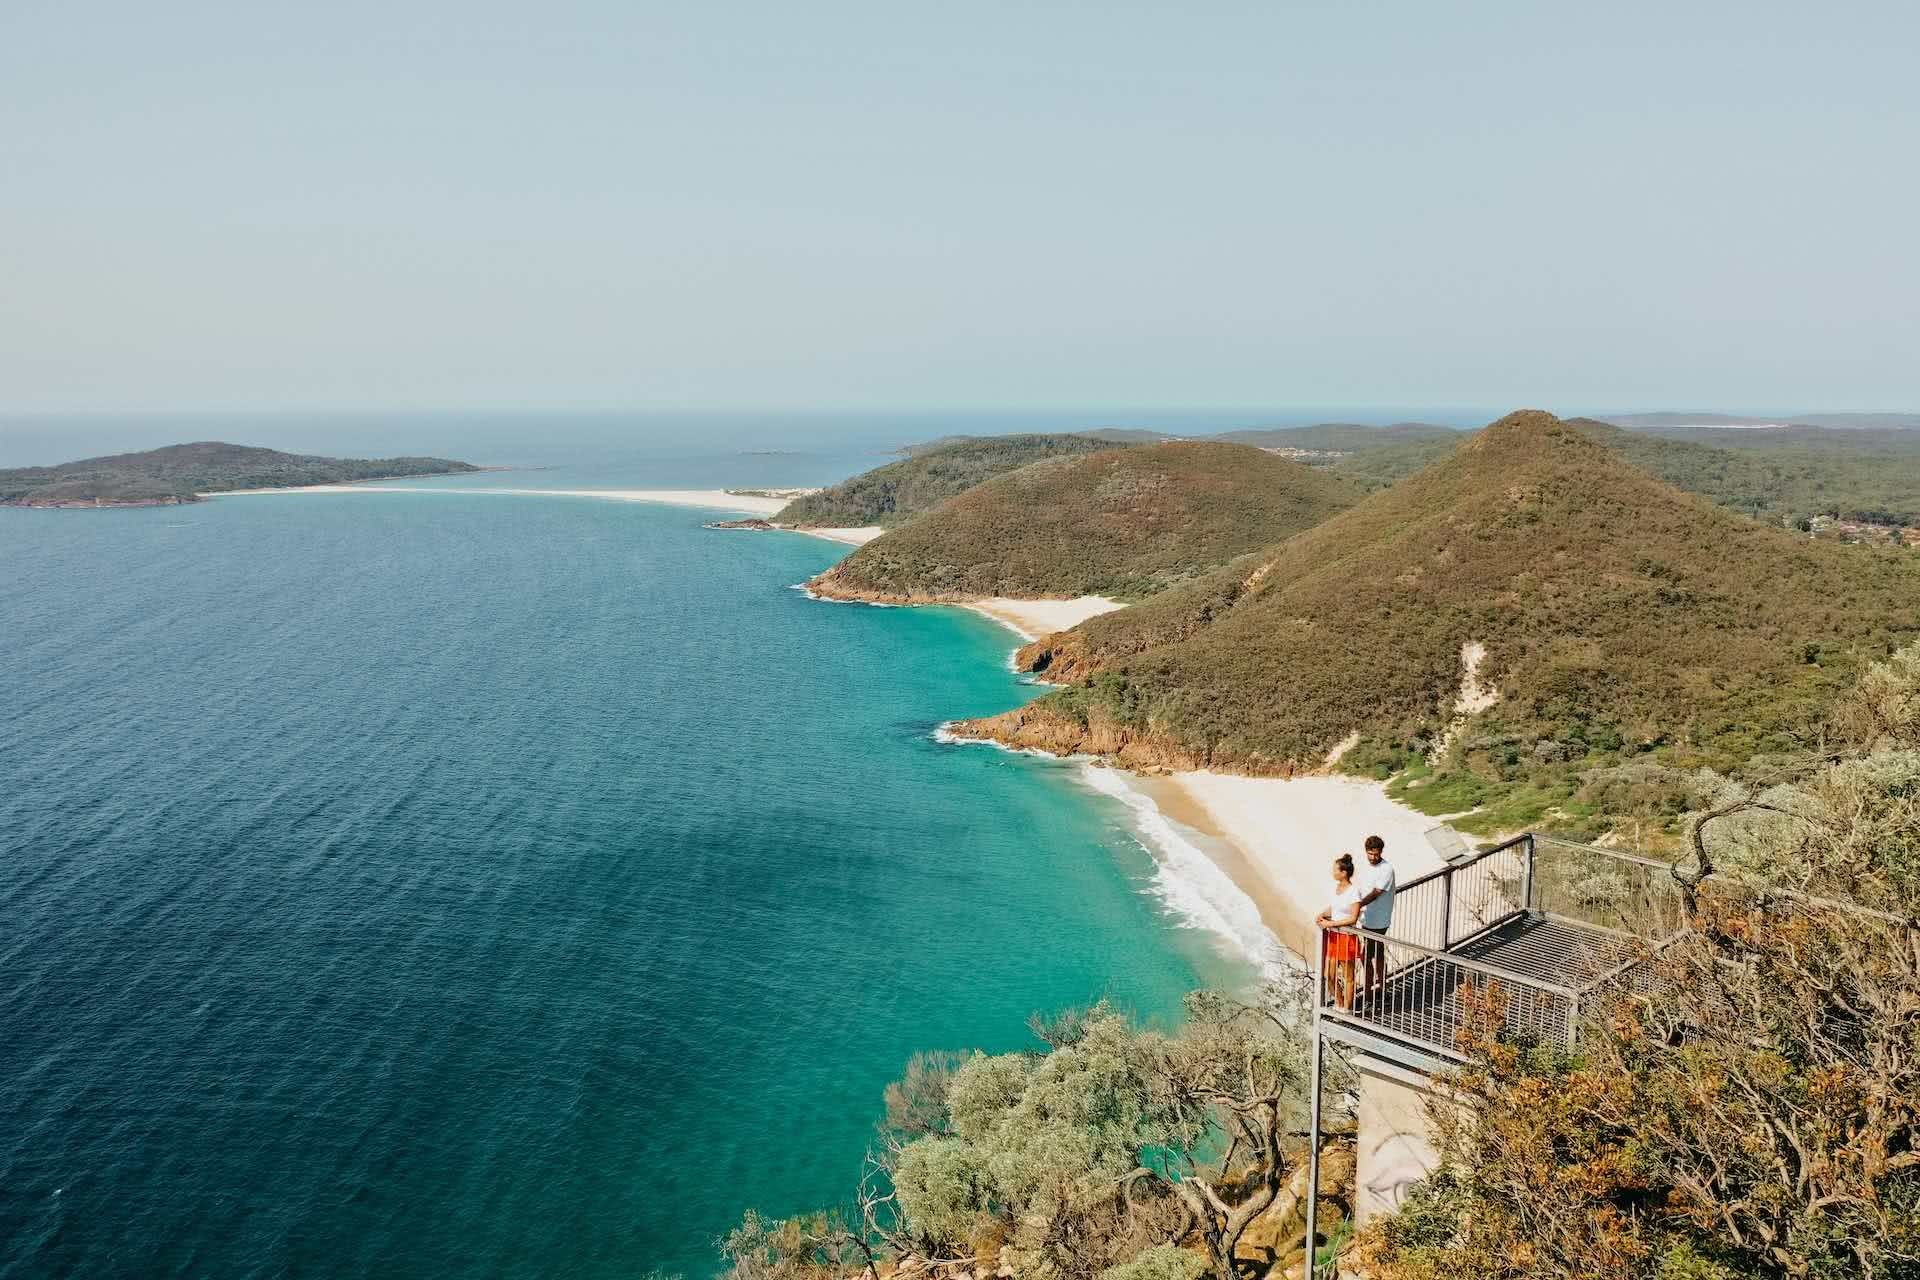 Plan Port Stephens for Your Next Adventure Weekender, photos by DNSW, Mt Tomaree, people, drone shot, lookout, ocean, beach, headlands